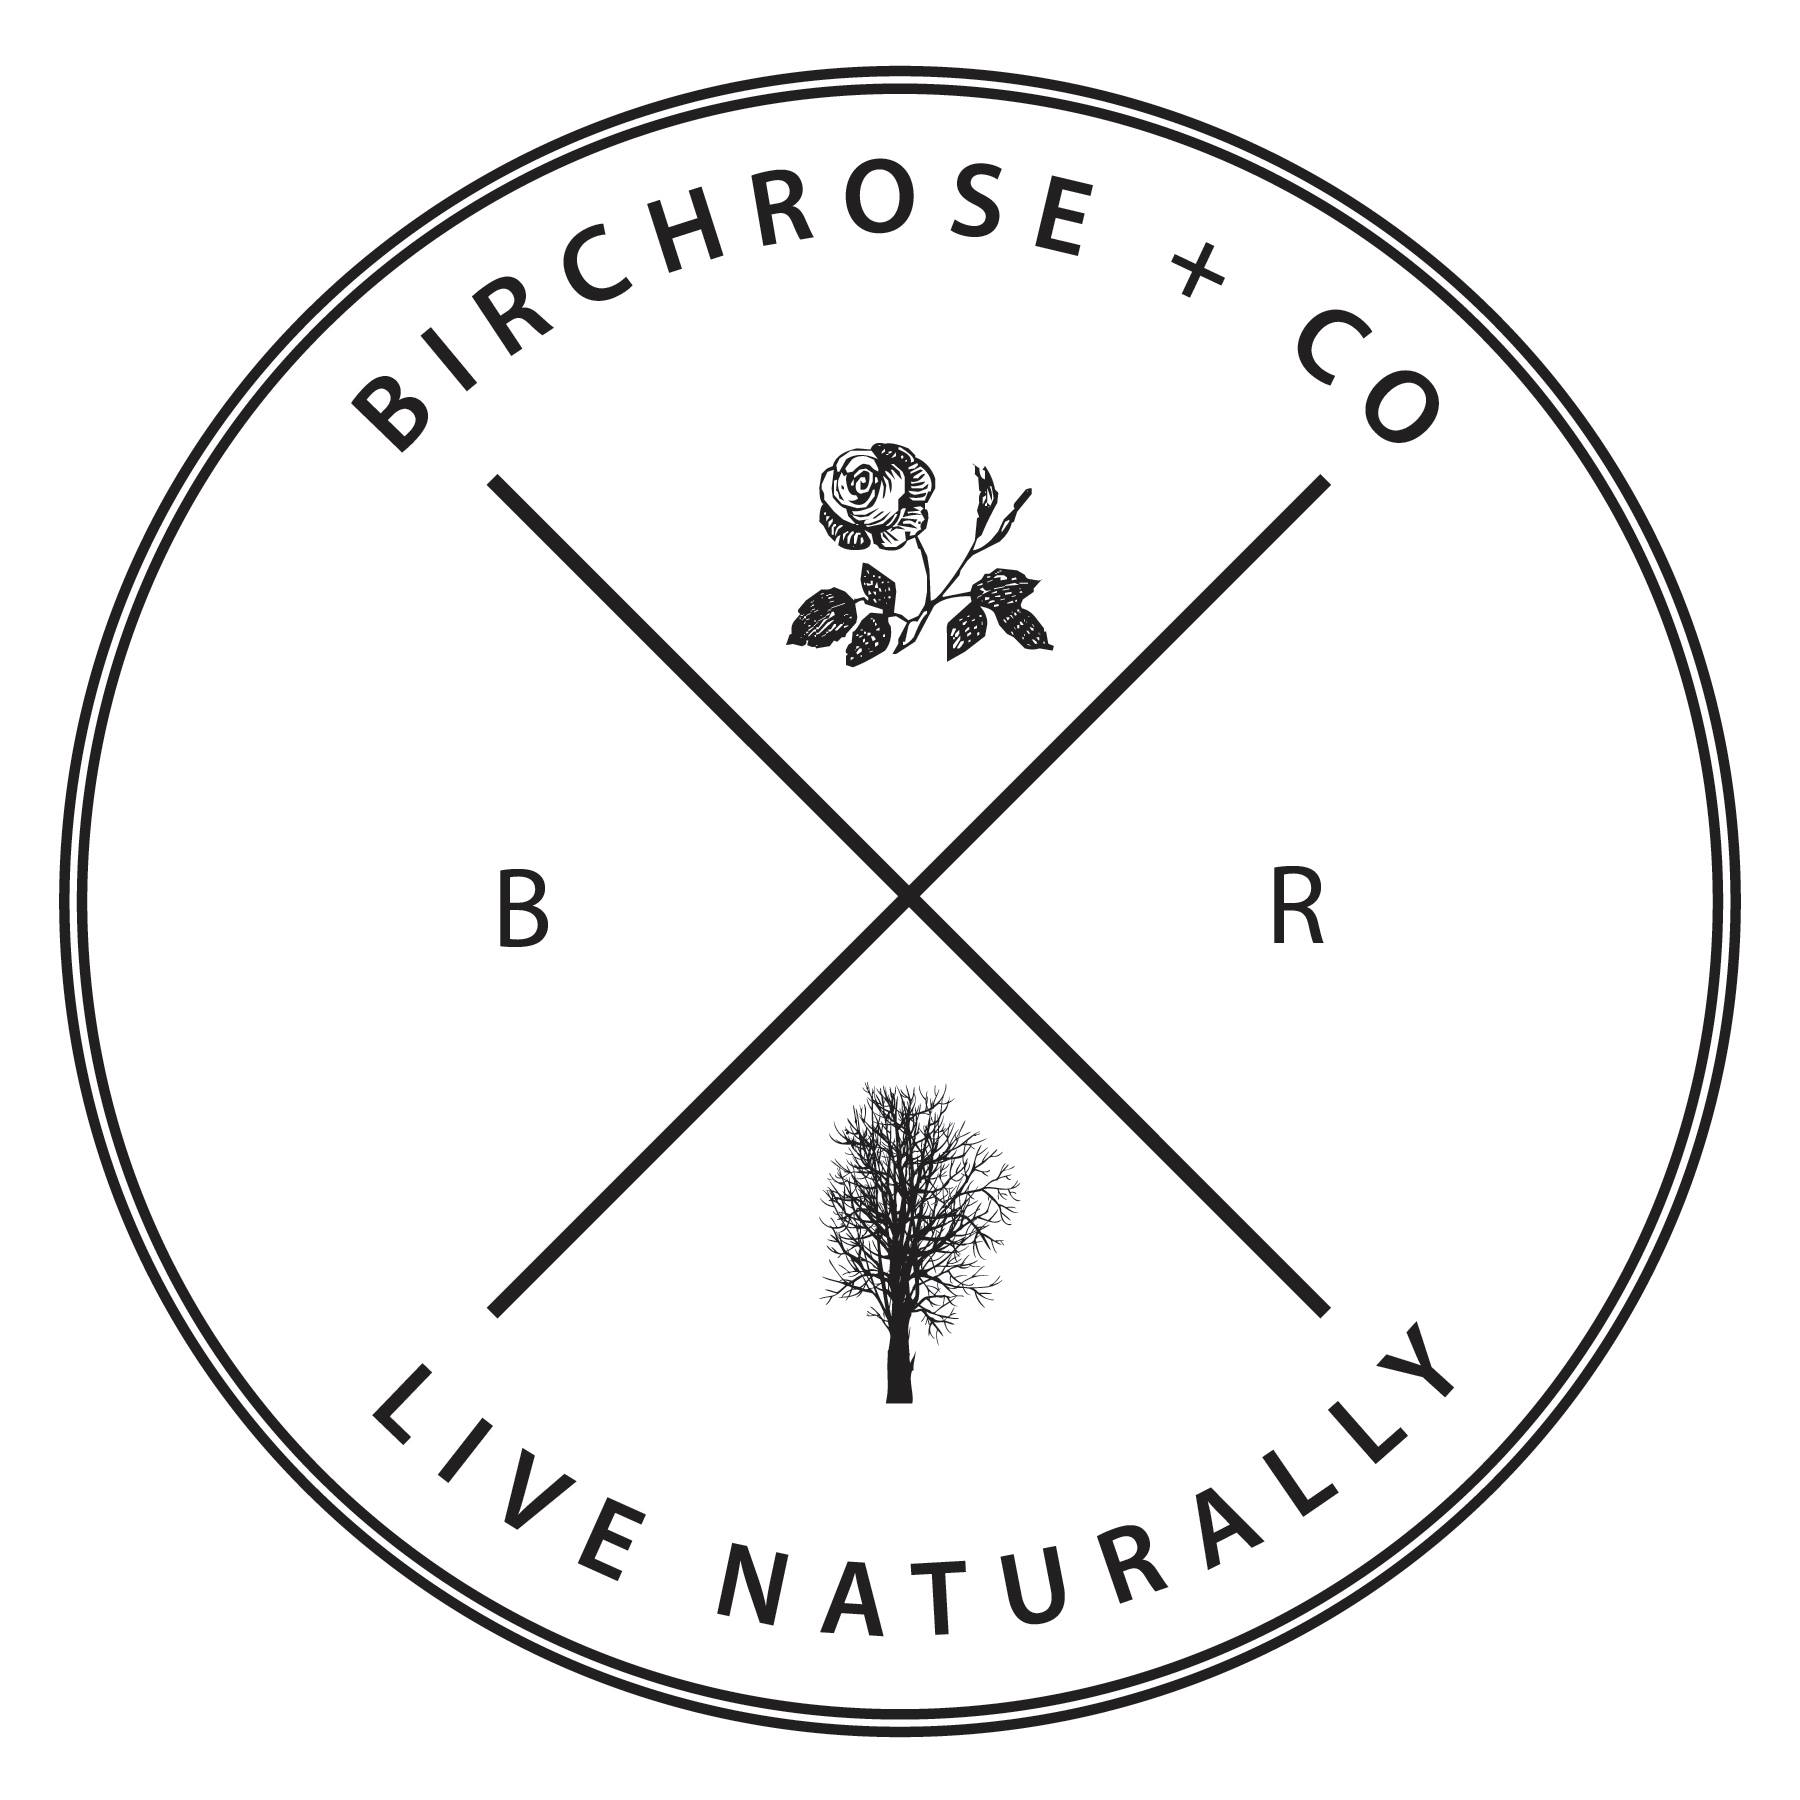 Birchrose & Co. - All of Birchrose + Co products have been formulated as a result of experimentation with different organic textures, vibrant colors, unique aromas, and the way the earth's elements interact with each other to nourish and heal the skin.